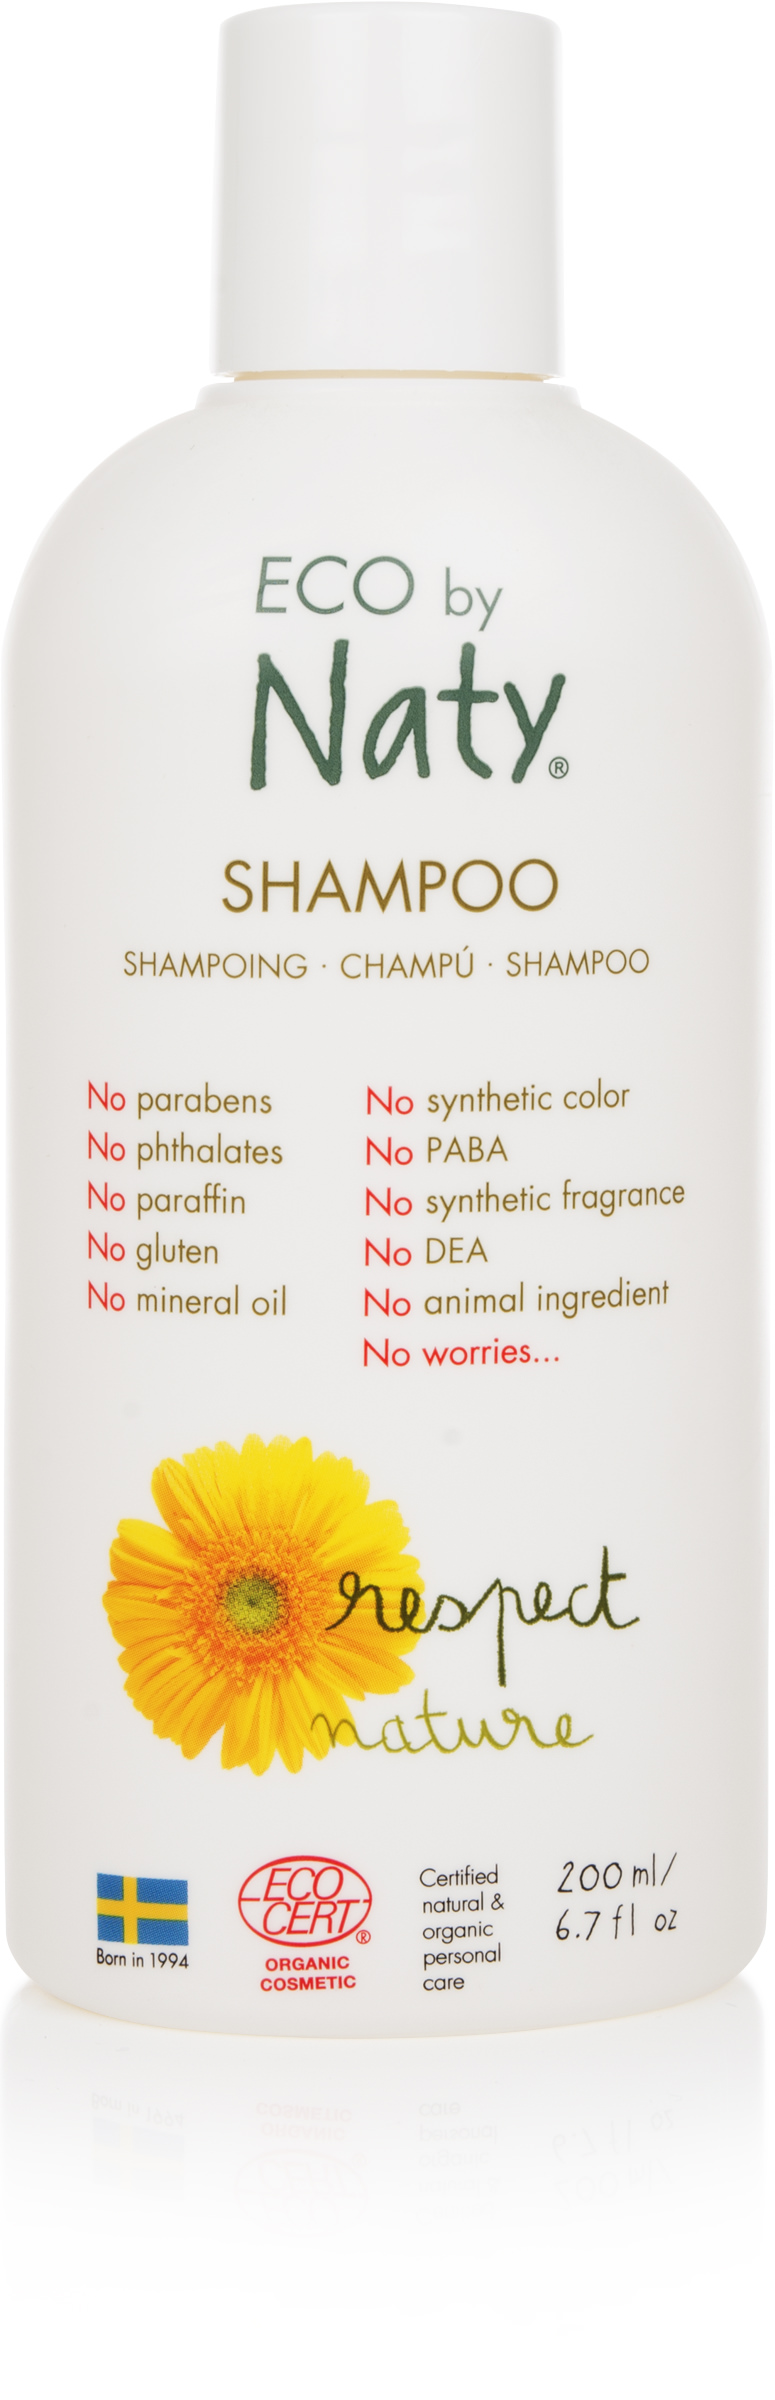 Eco by Naty Organic Shampoo, 6 Bottles of 6.7 Fl. Oz by Eco by Naty